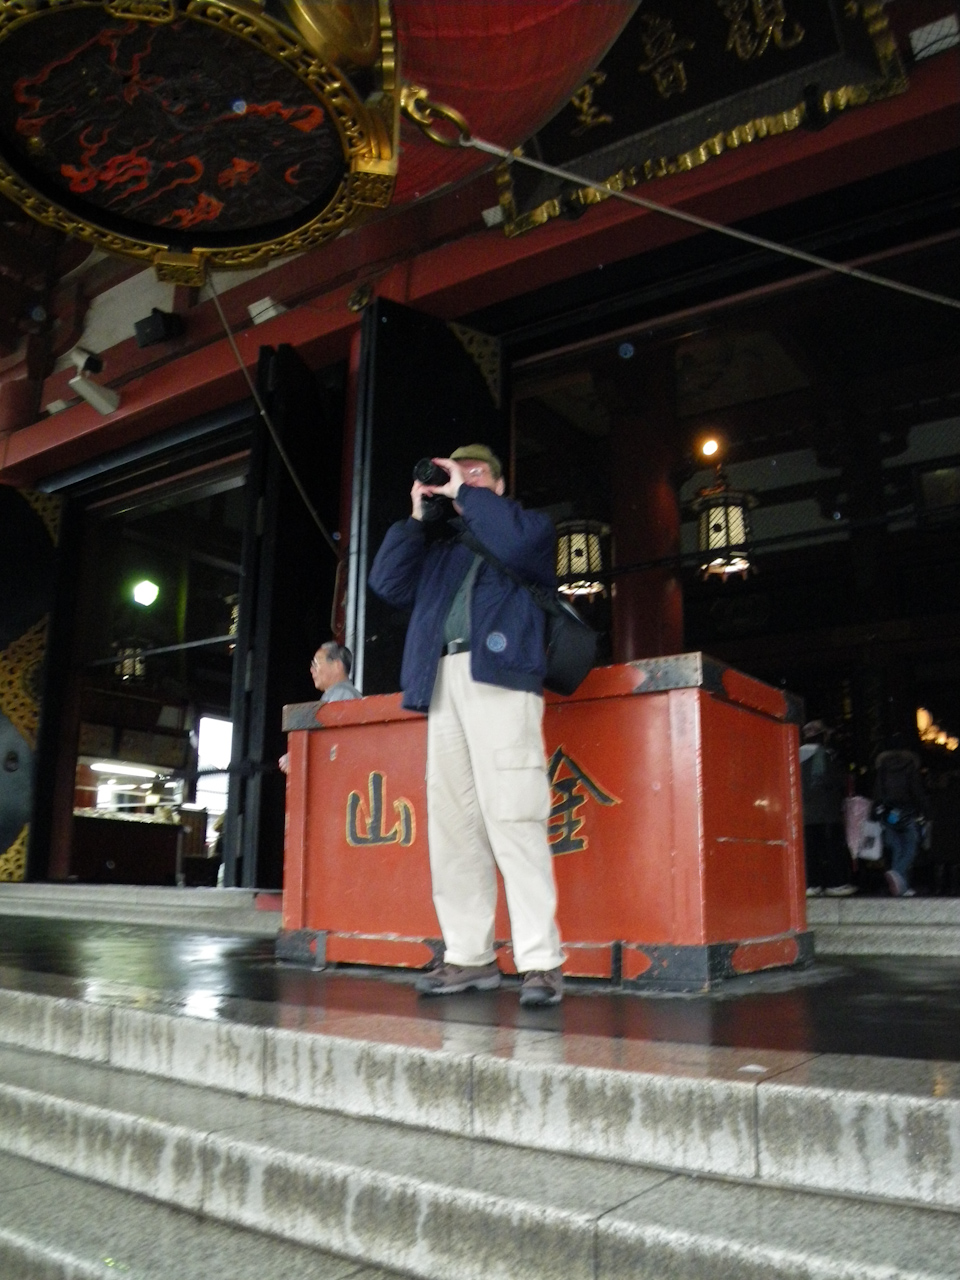 013_0076.jpg - Chris at Asakusa Senso-ji Temple Main Hall